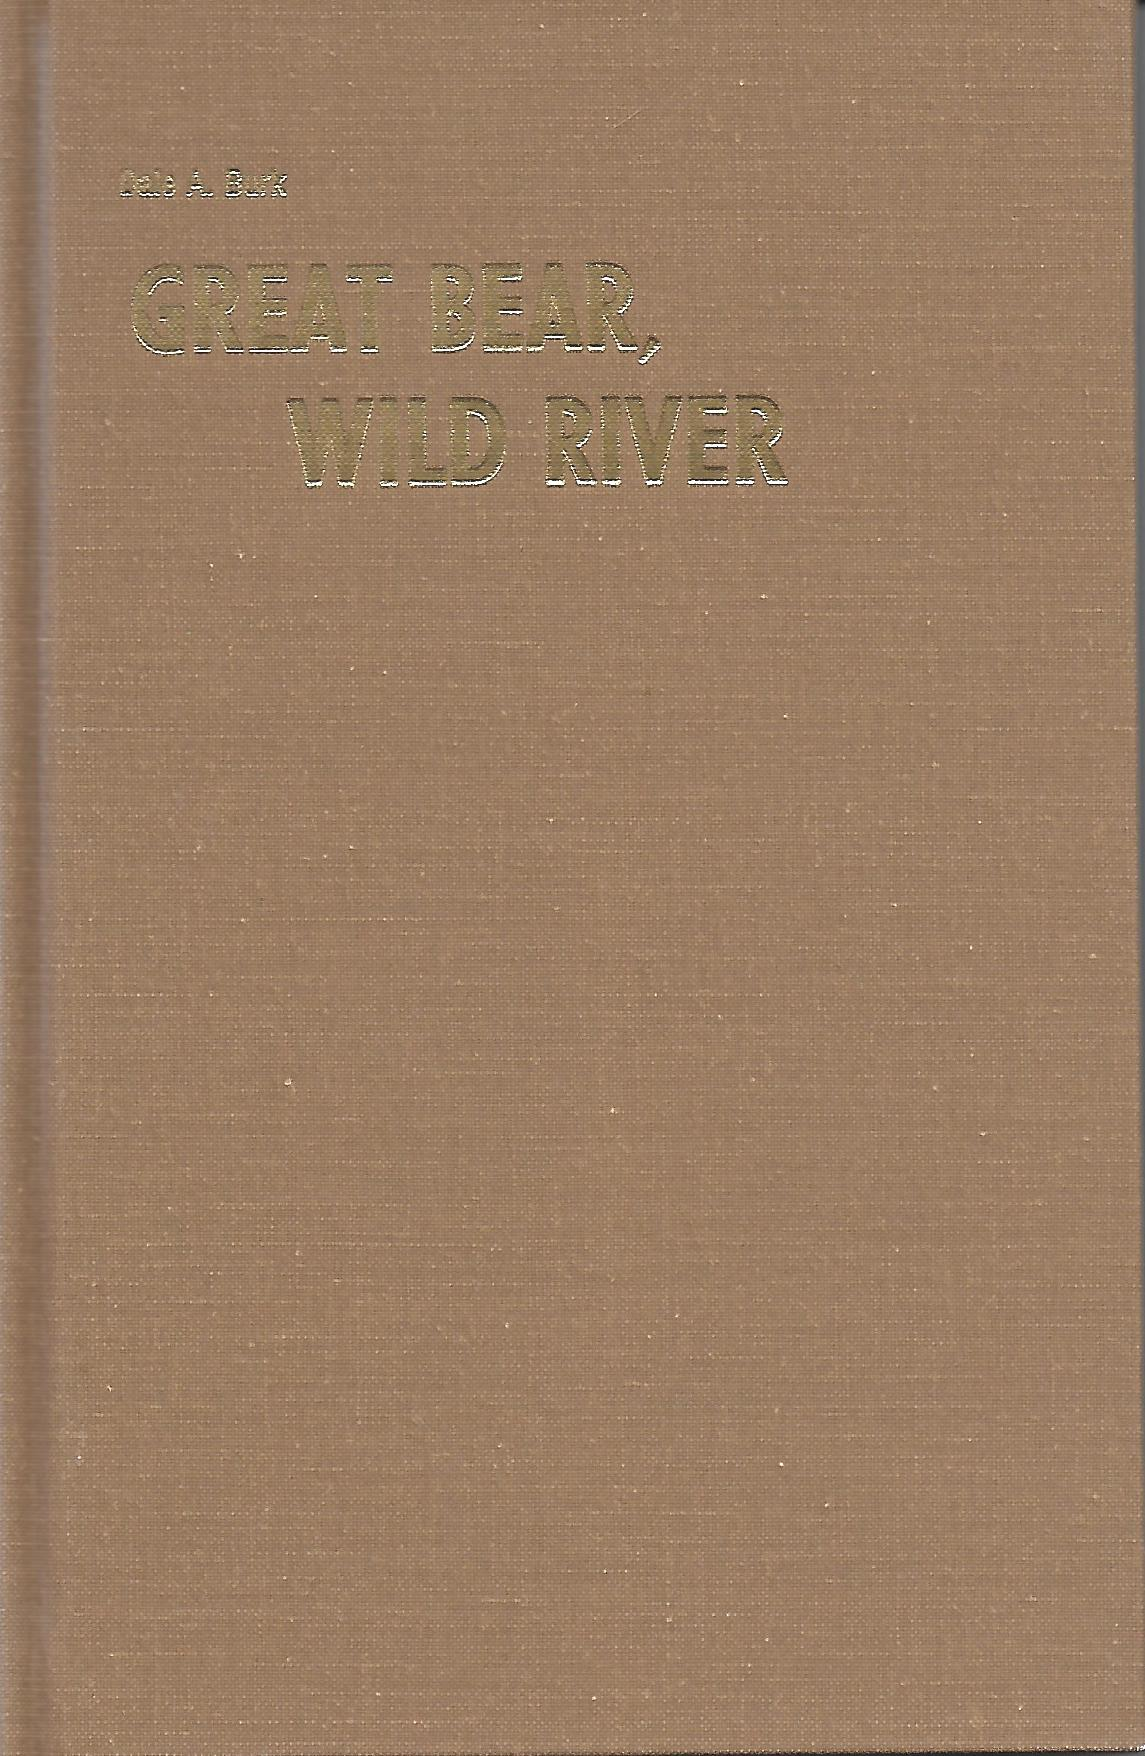 Great Bear, Wild River